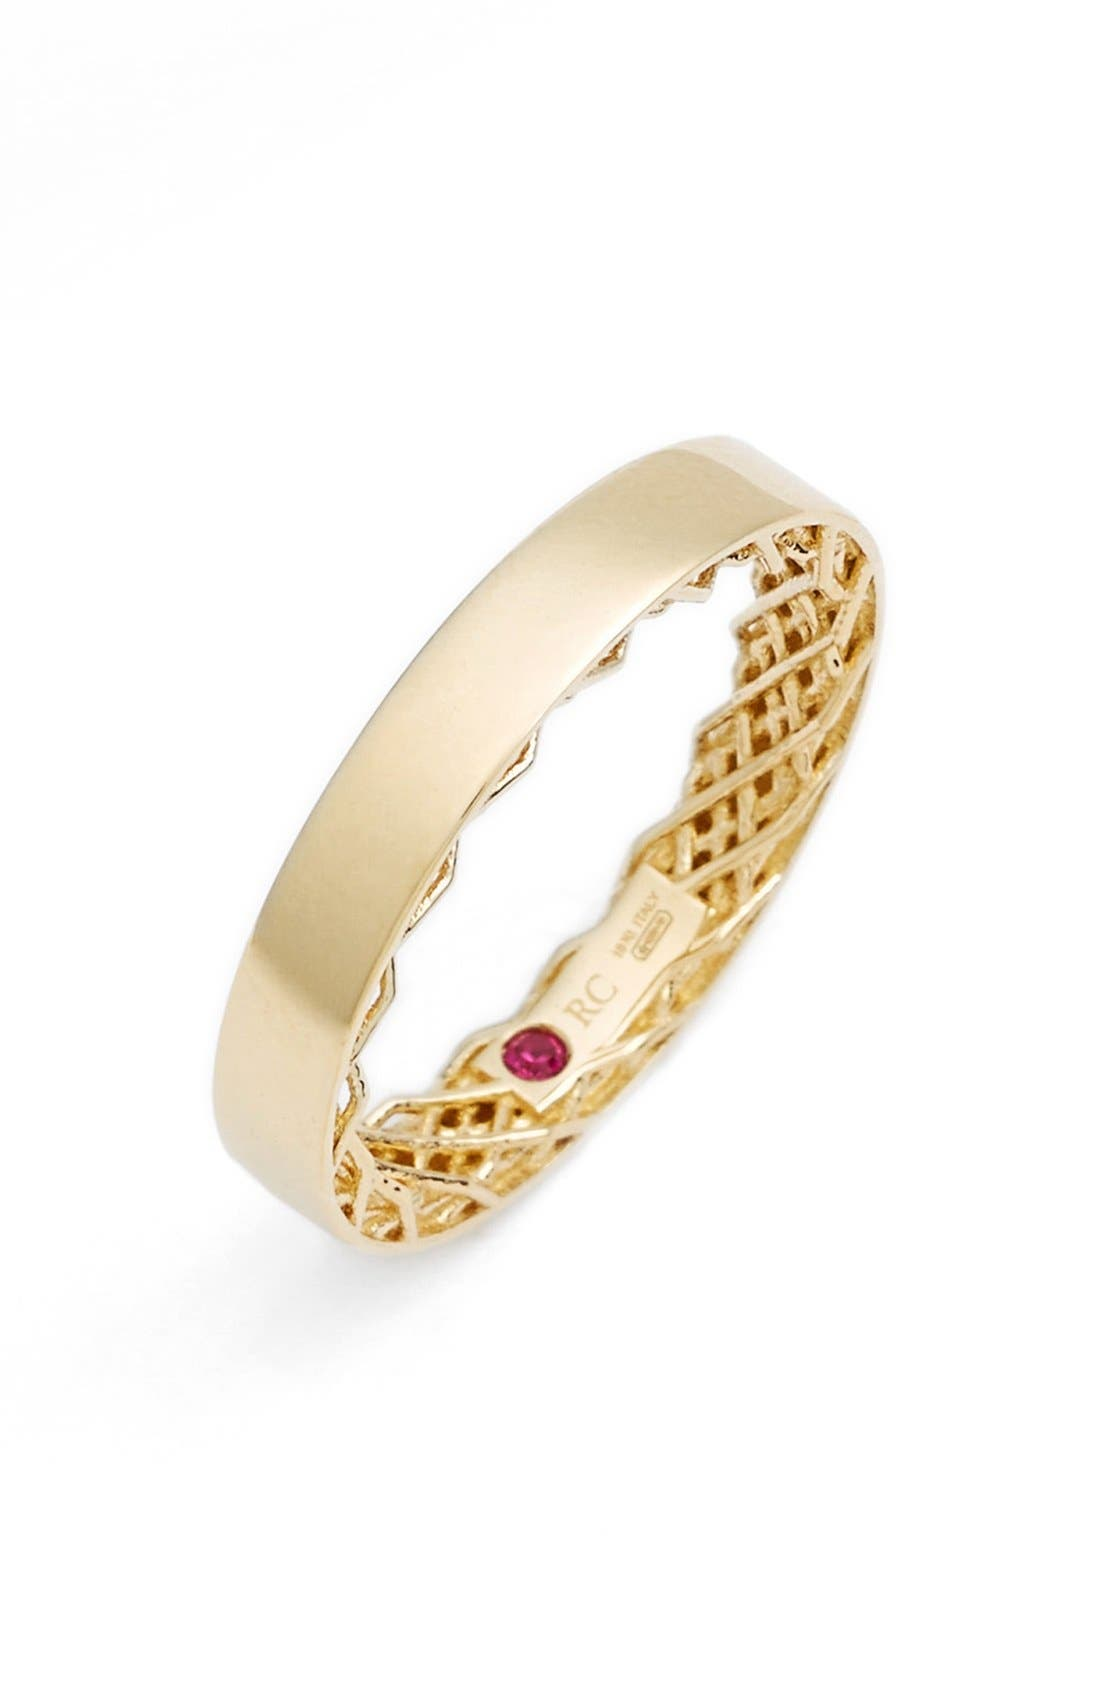 'Symphony - Golden Gate' Band Ring,                         Main,                         color, YELLOW GOLD